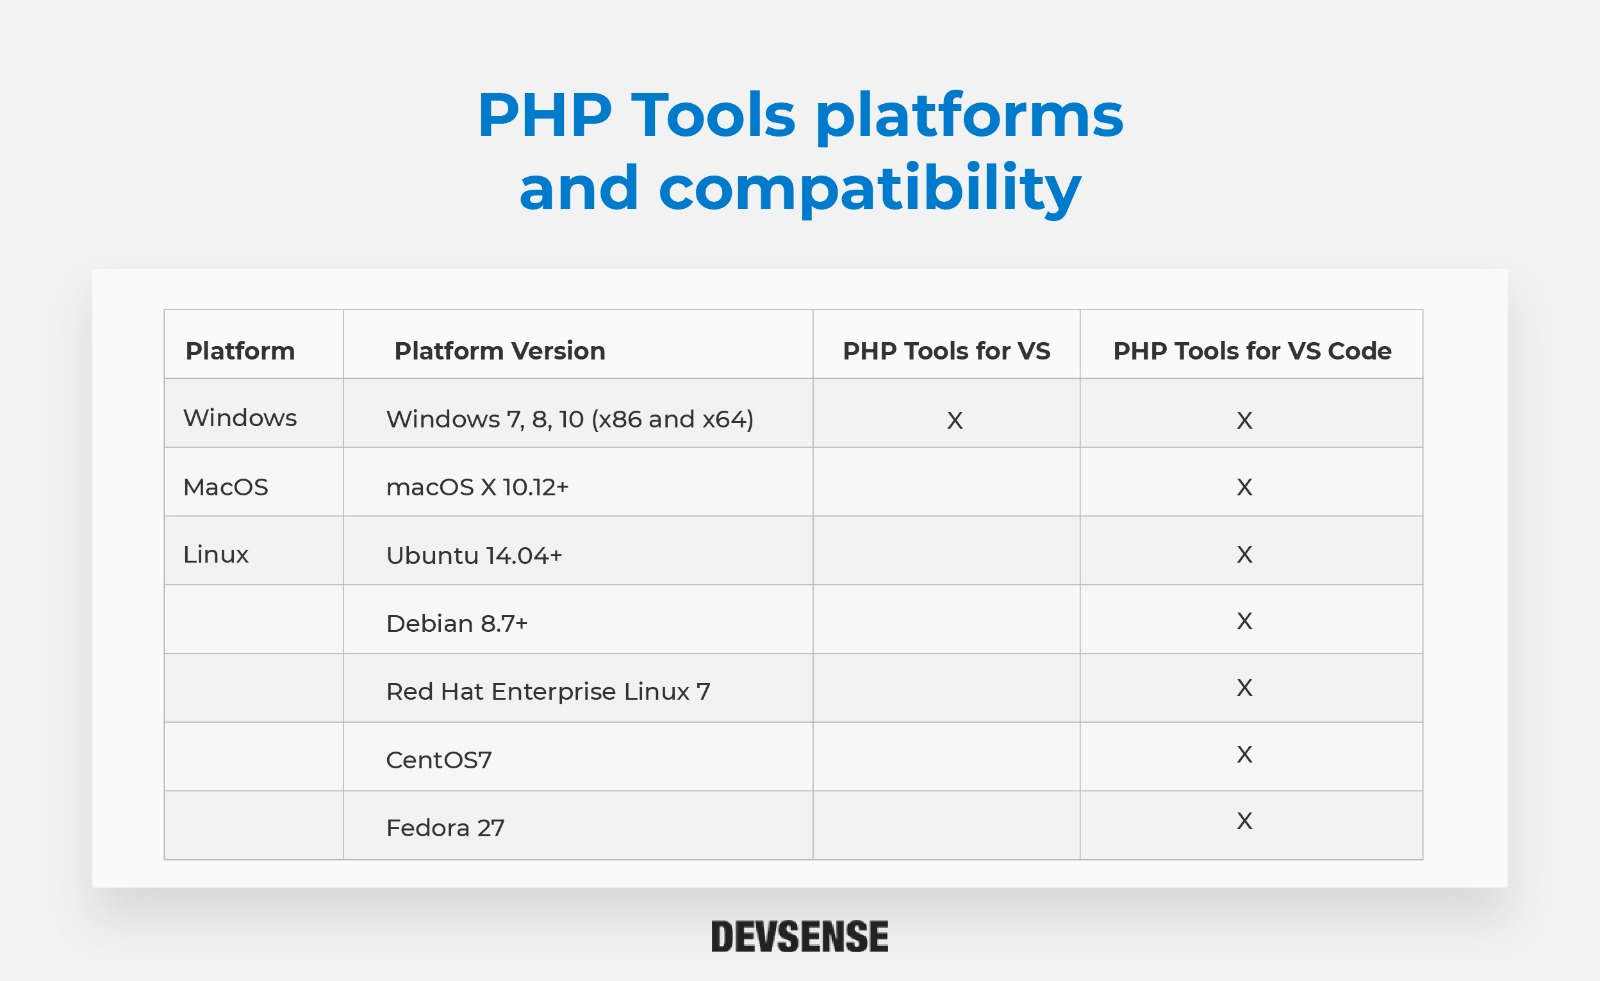 PHP Tools platforms and compatibility